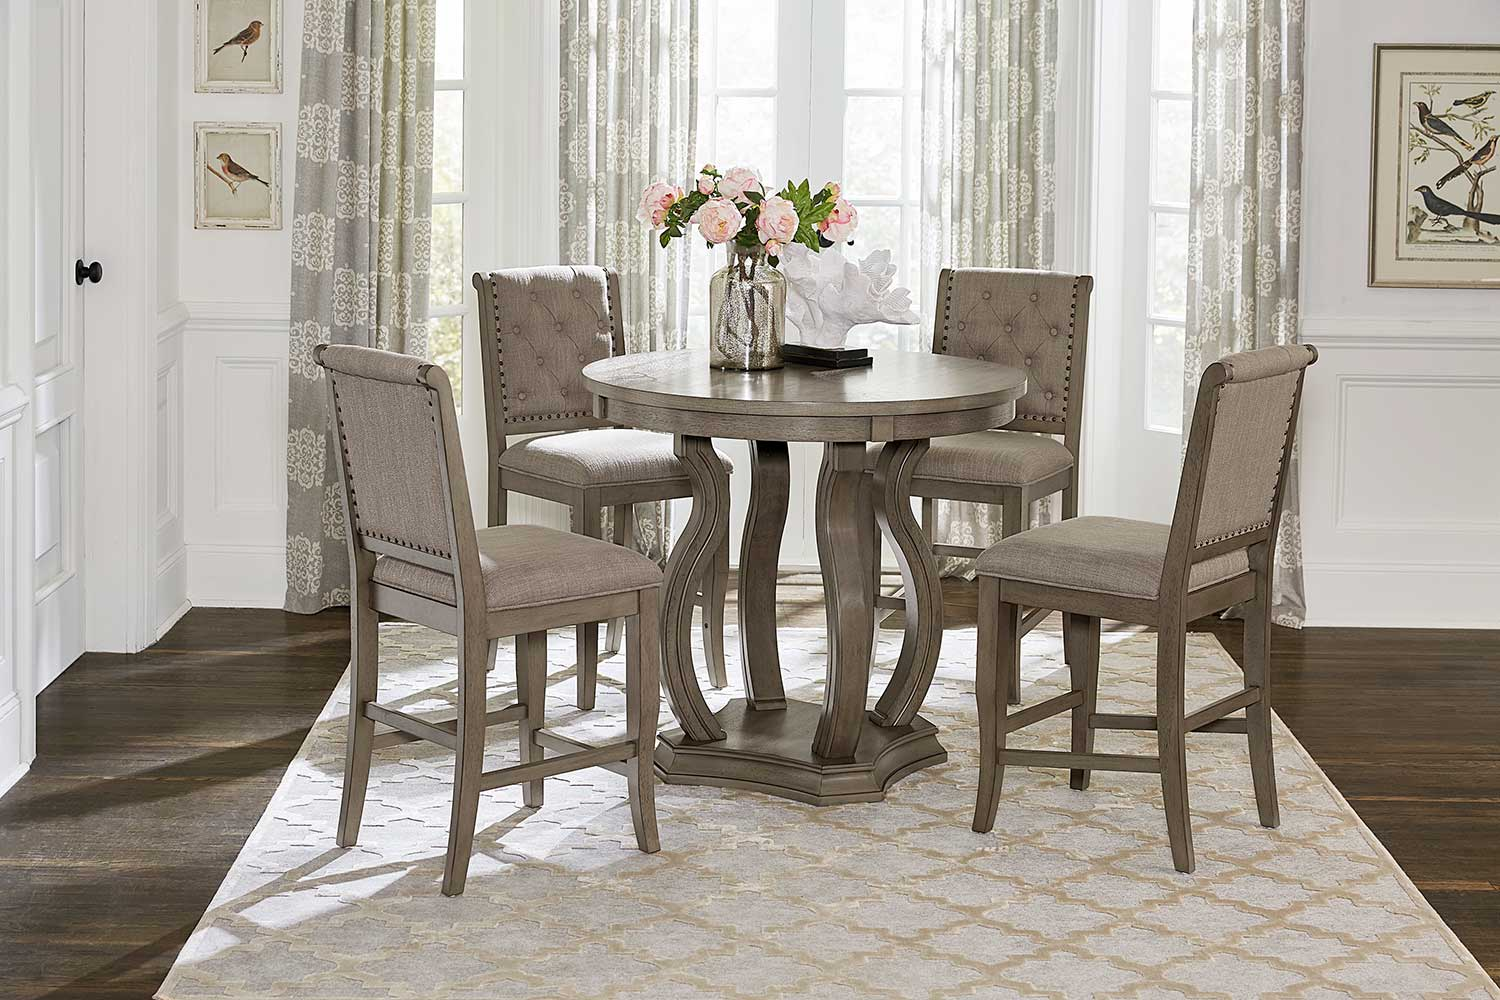 Homelegance Vermillion Counter Height Dining Set - Bisque